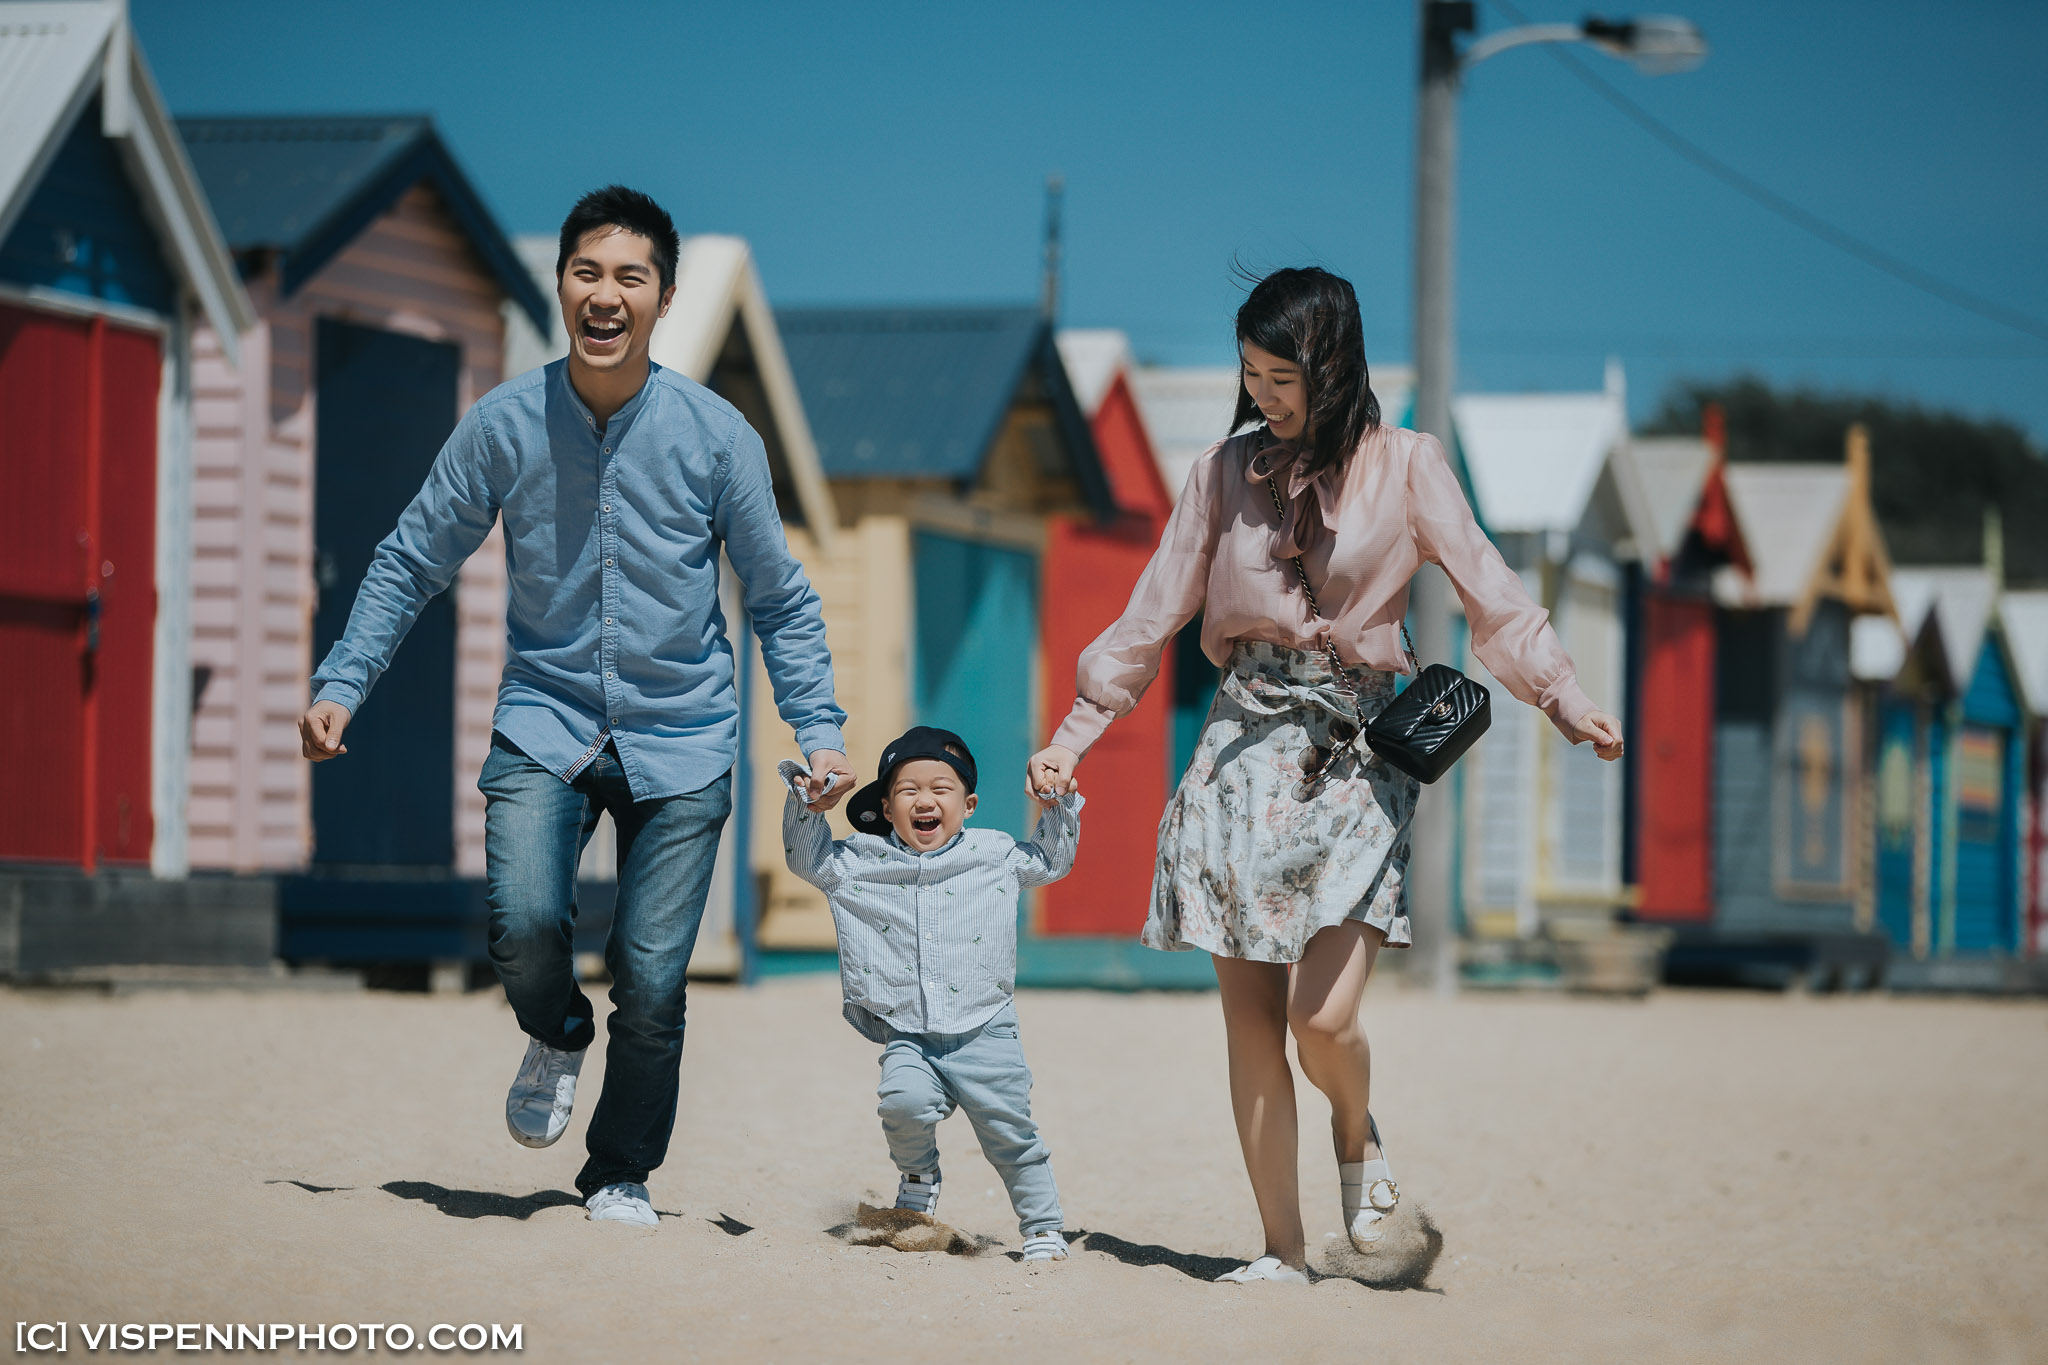 Melbourne Newborn Baby Family Photo BaoBao VISPENN 墨尔本 儿童 宝宝 百天照 满月照 孕妇照 全家福 KIDS CindiYUAN 1663 VISPENN